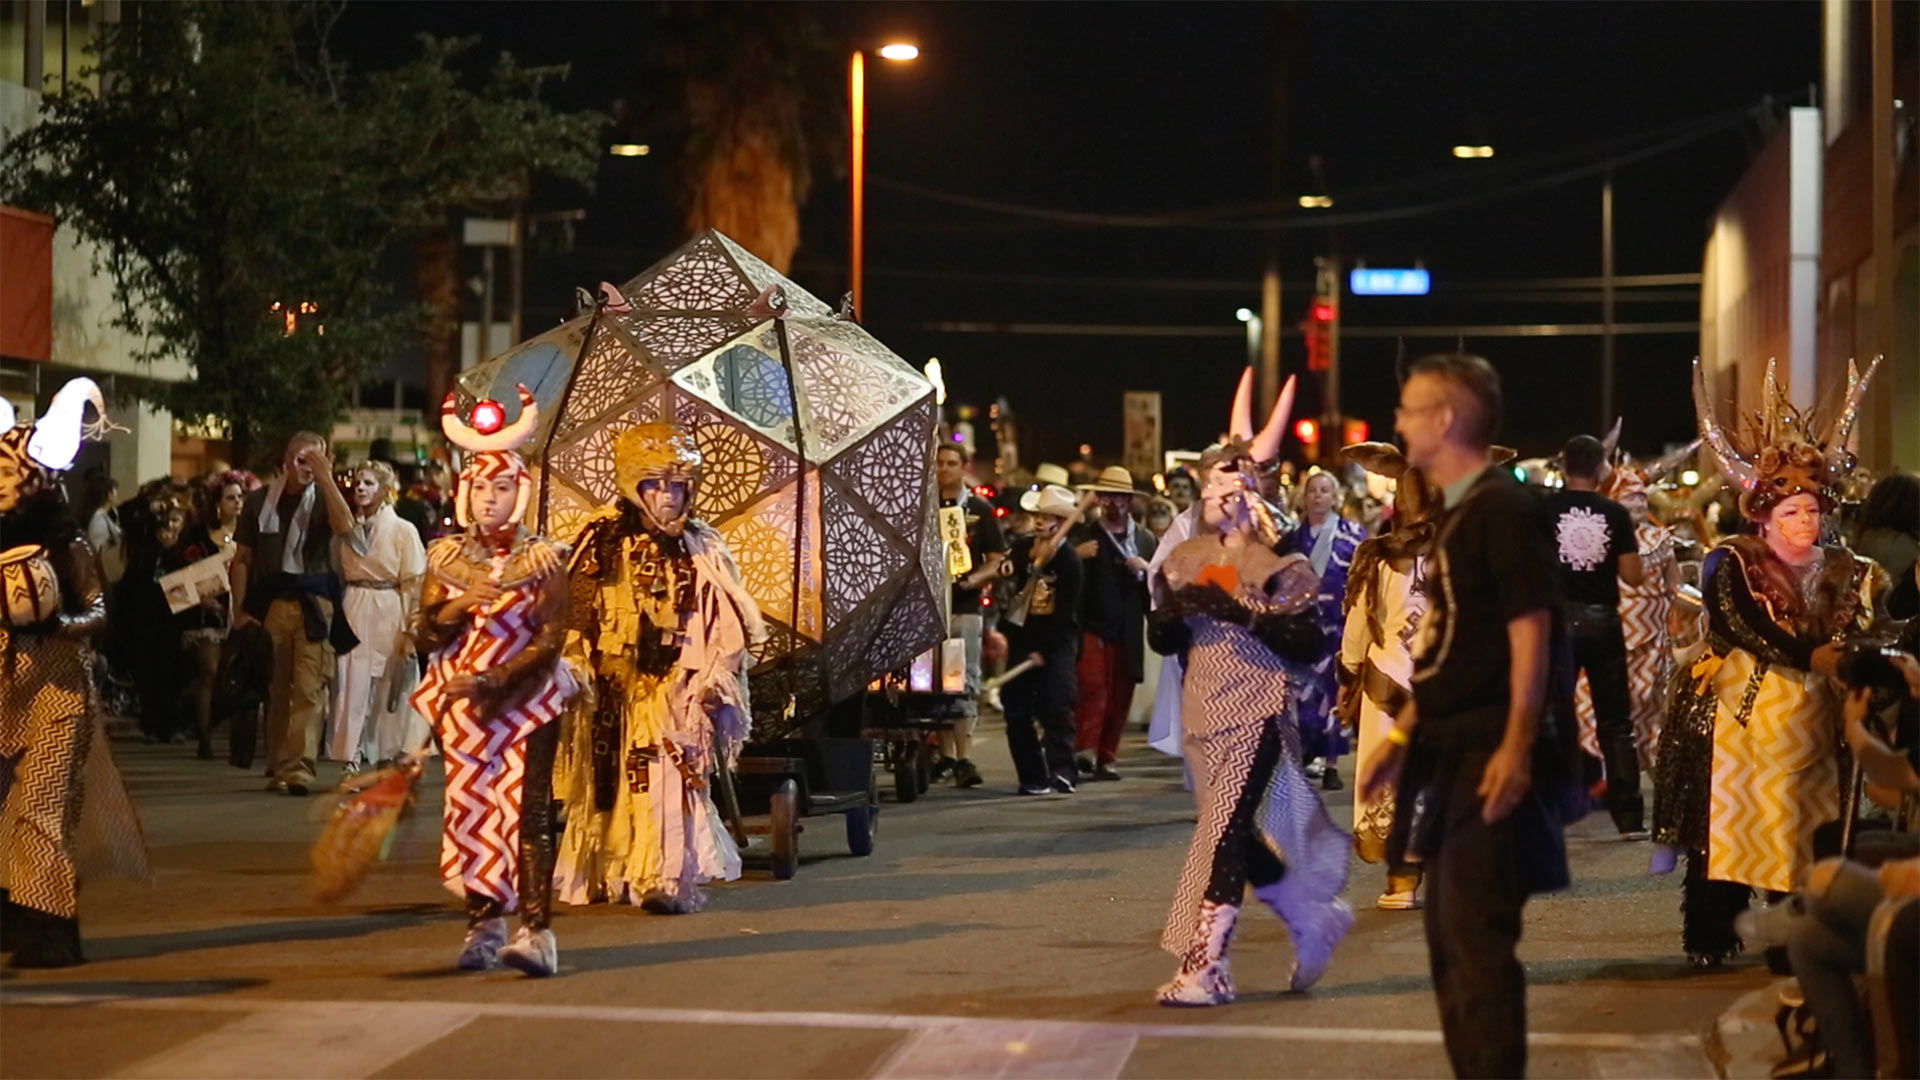 The All Souls procession in Downtown Tucson.